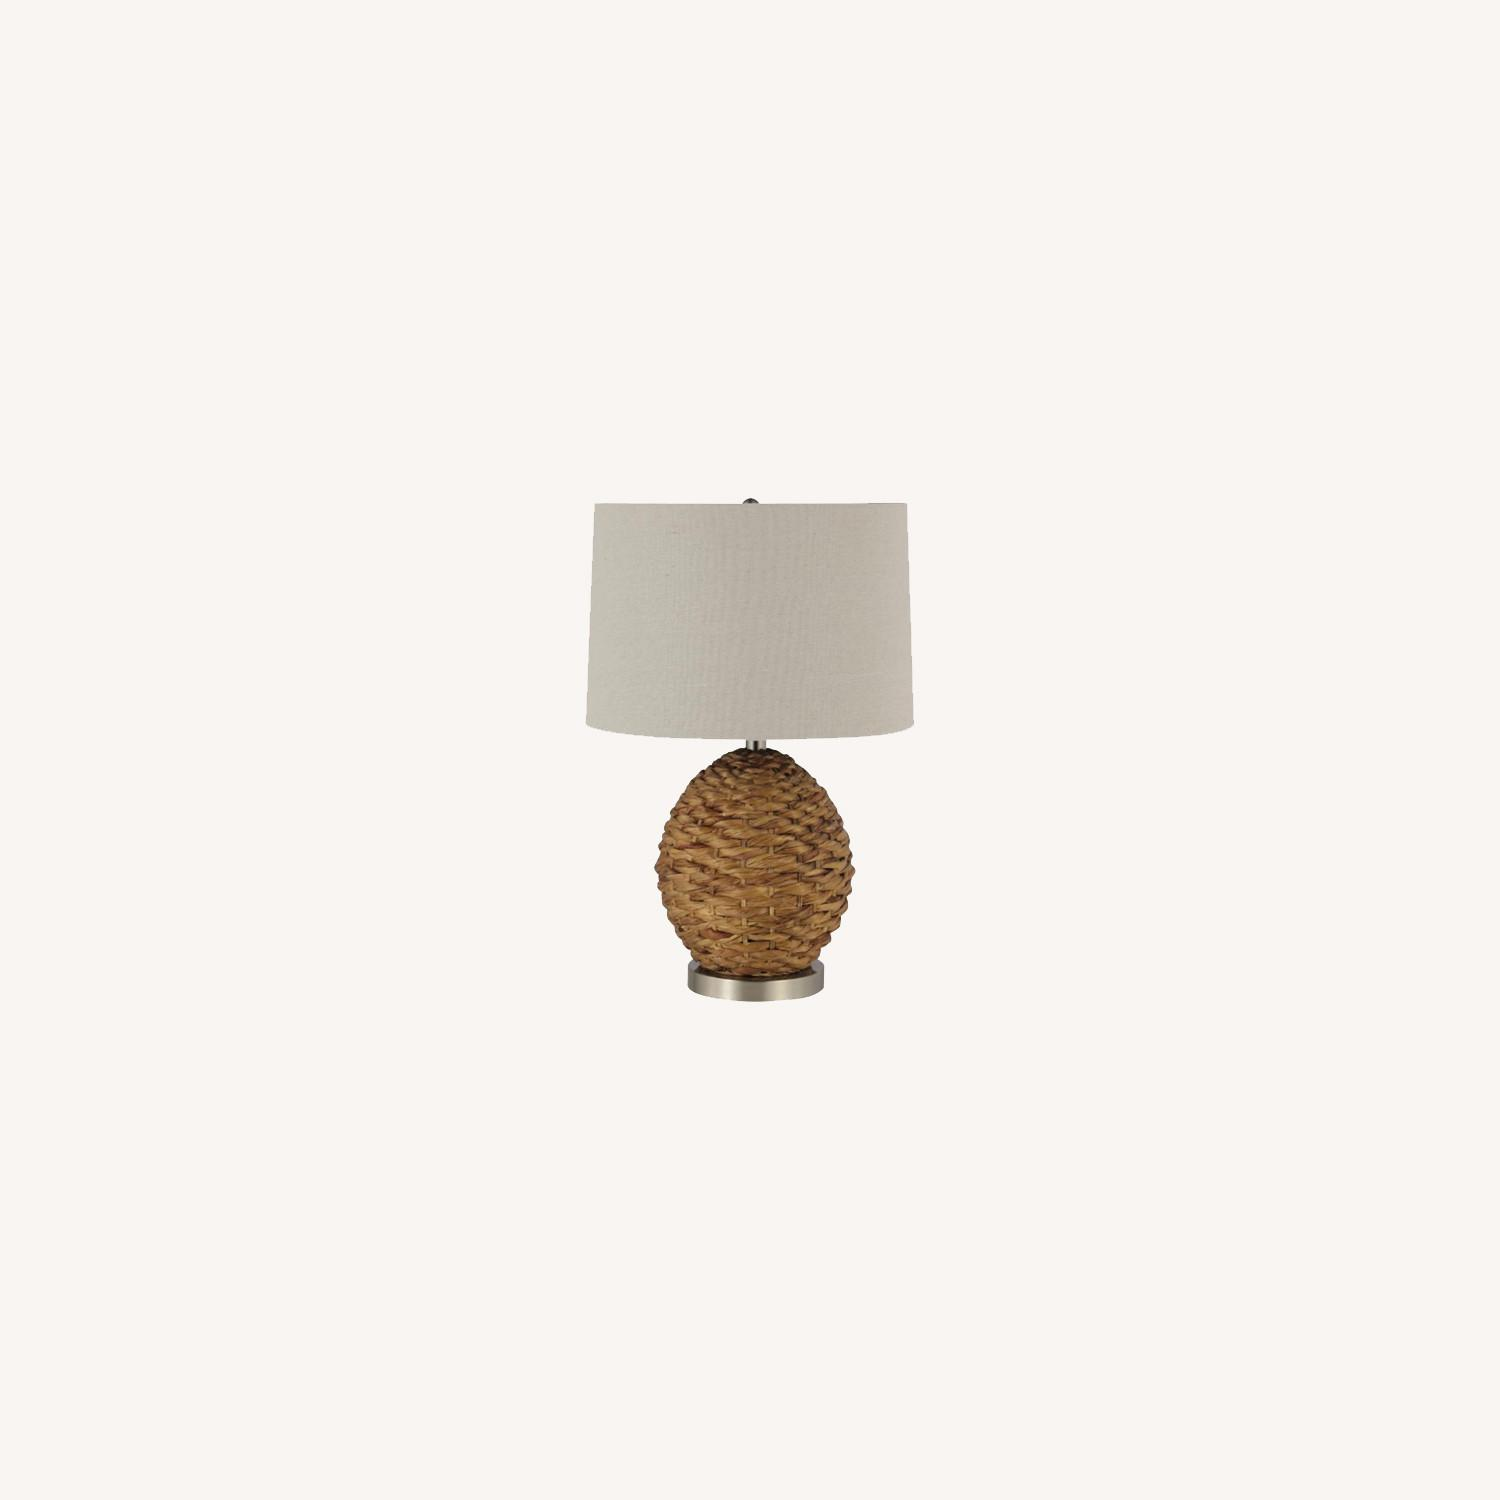 Table Lamp In Beige & Brown Rattan Weave Finish - image-4